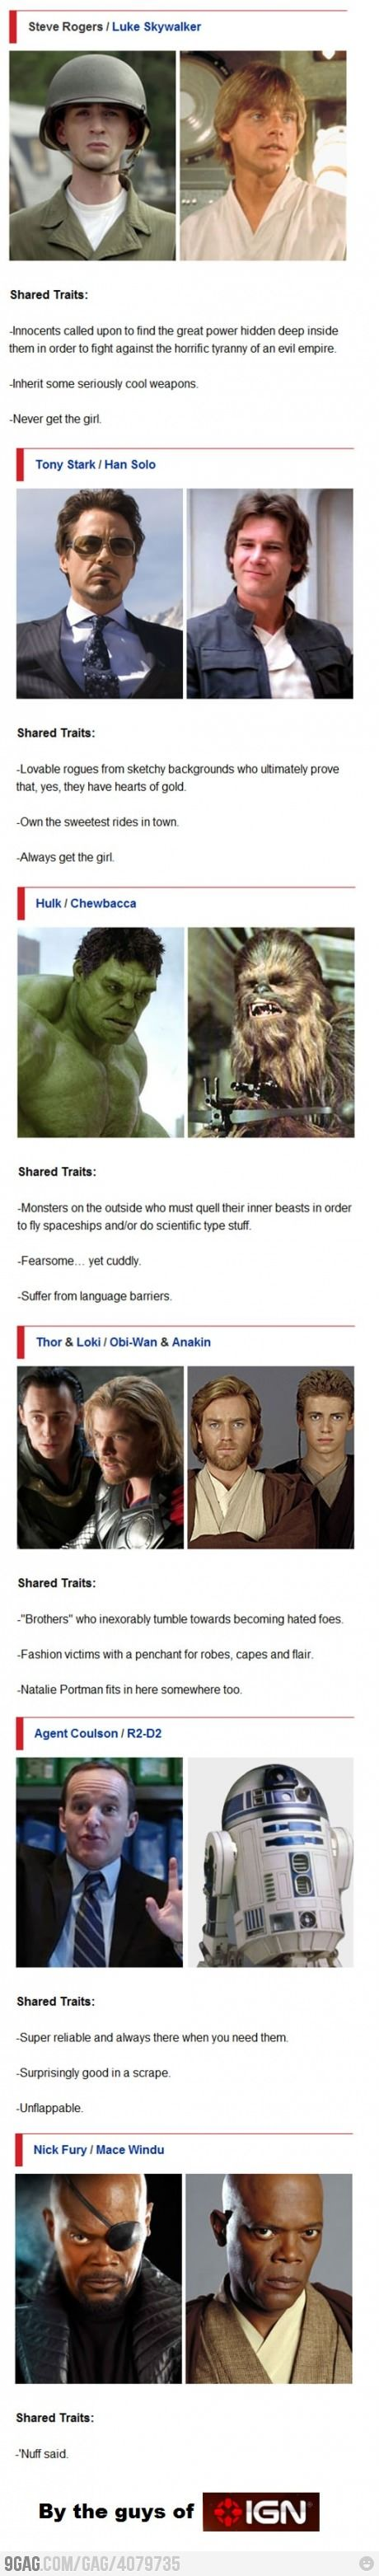 The Avengers and Star Wars...never would have thought of it like that